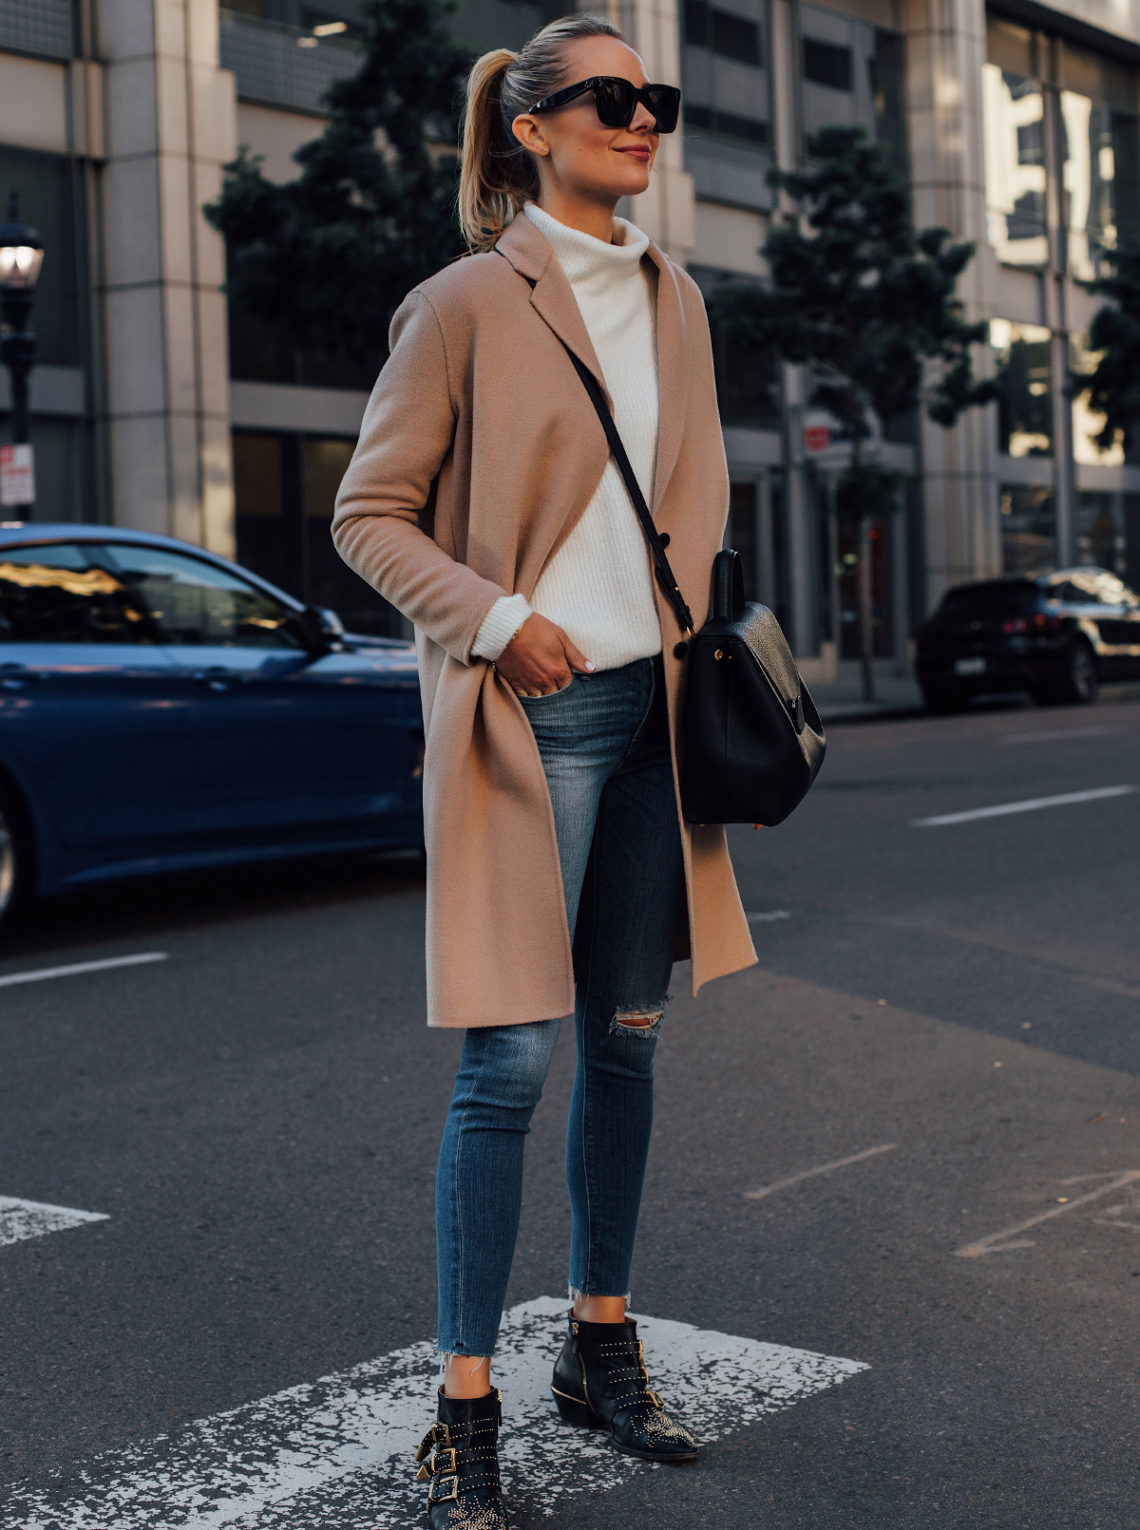 Blonde Woman Wearing AllSaints Camel Coat White Sweater Hudson Denim Ripped Skinny Jeans Chloe Black Susanna Booties Black Handbag Fashion Jackson San Diego Fashion Blogger Street Style